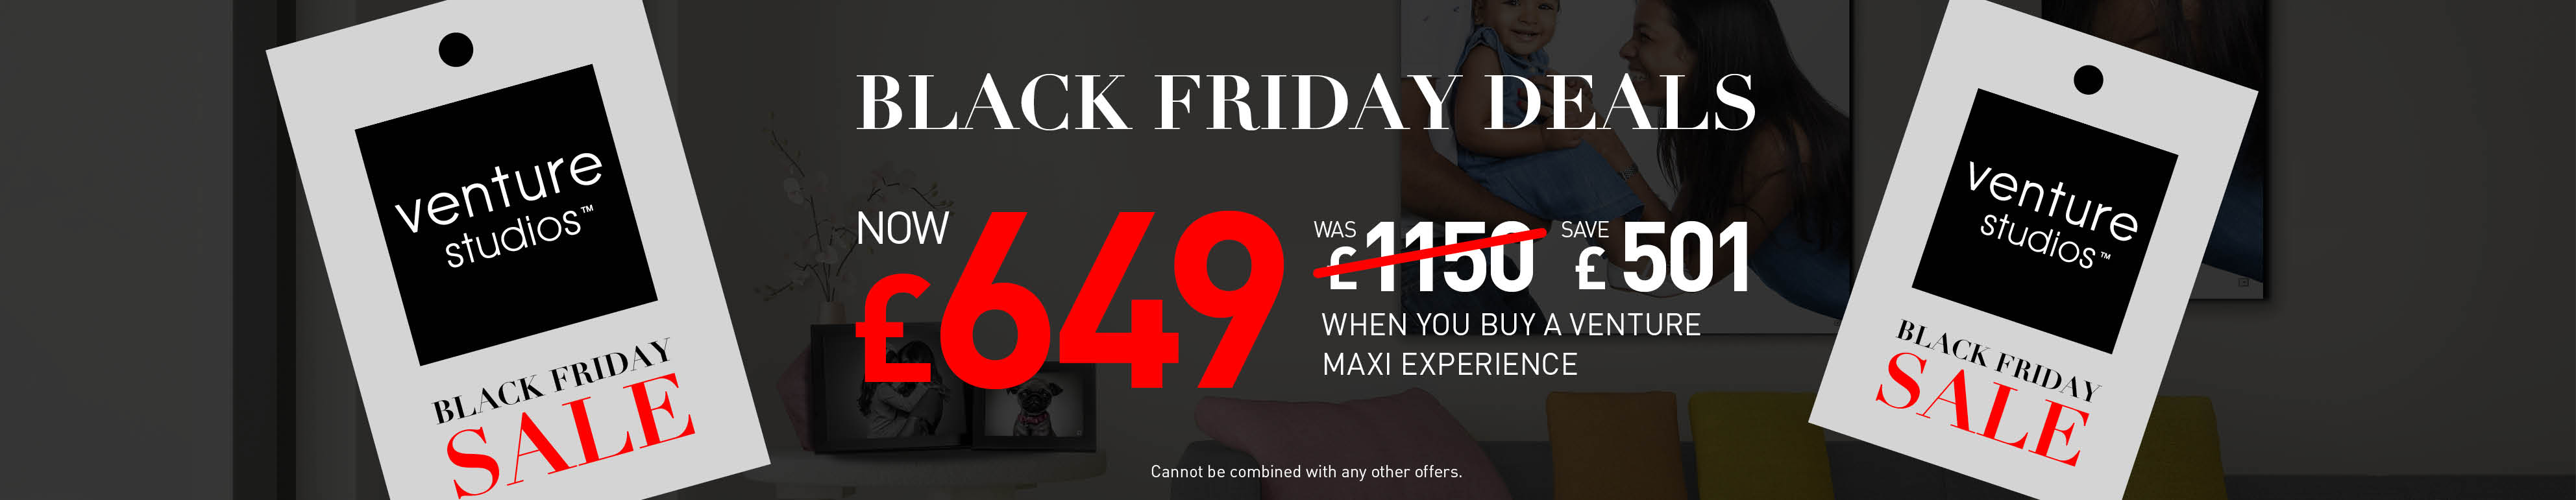 MAXI FAMILY PHOTOGRAPHY BLACK FRIDAY